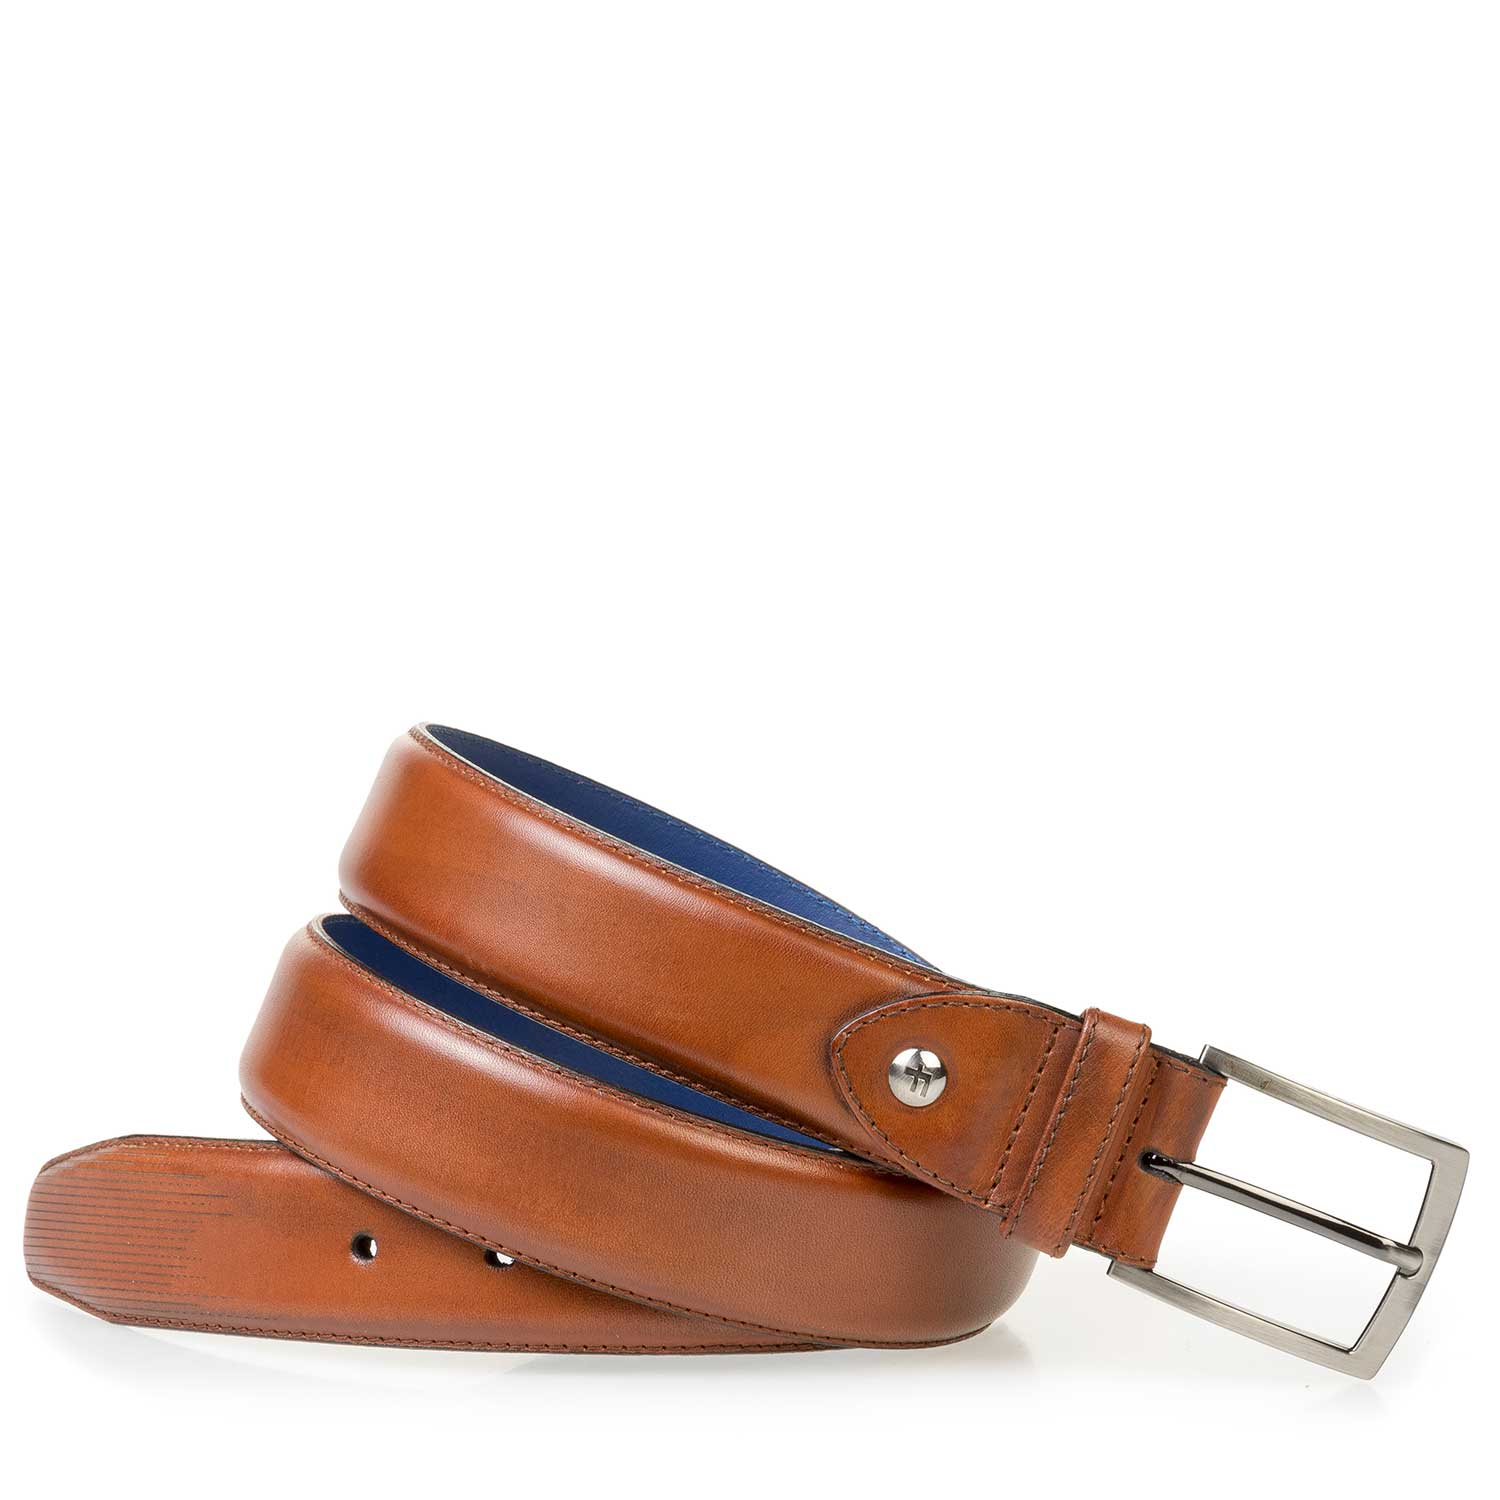 75196/00 - Cognac-coloured calf leather belt with fine lines